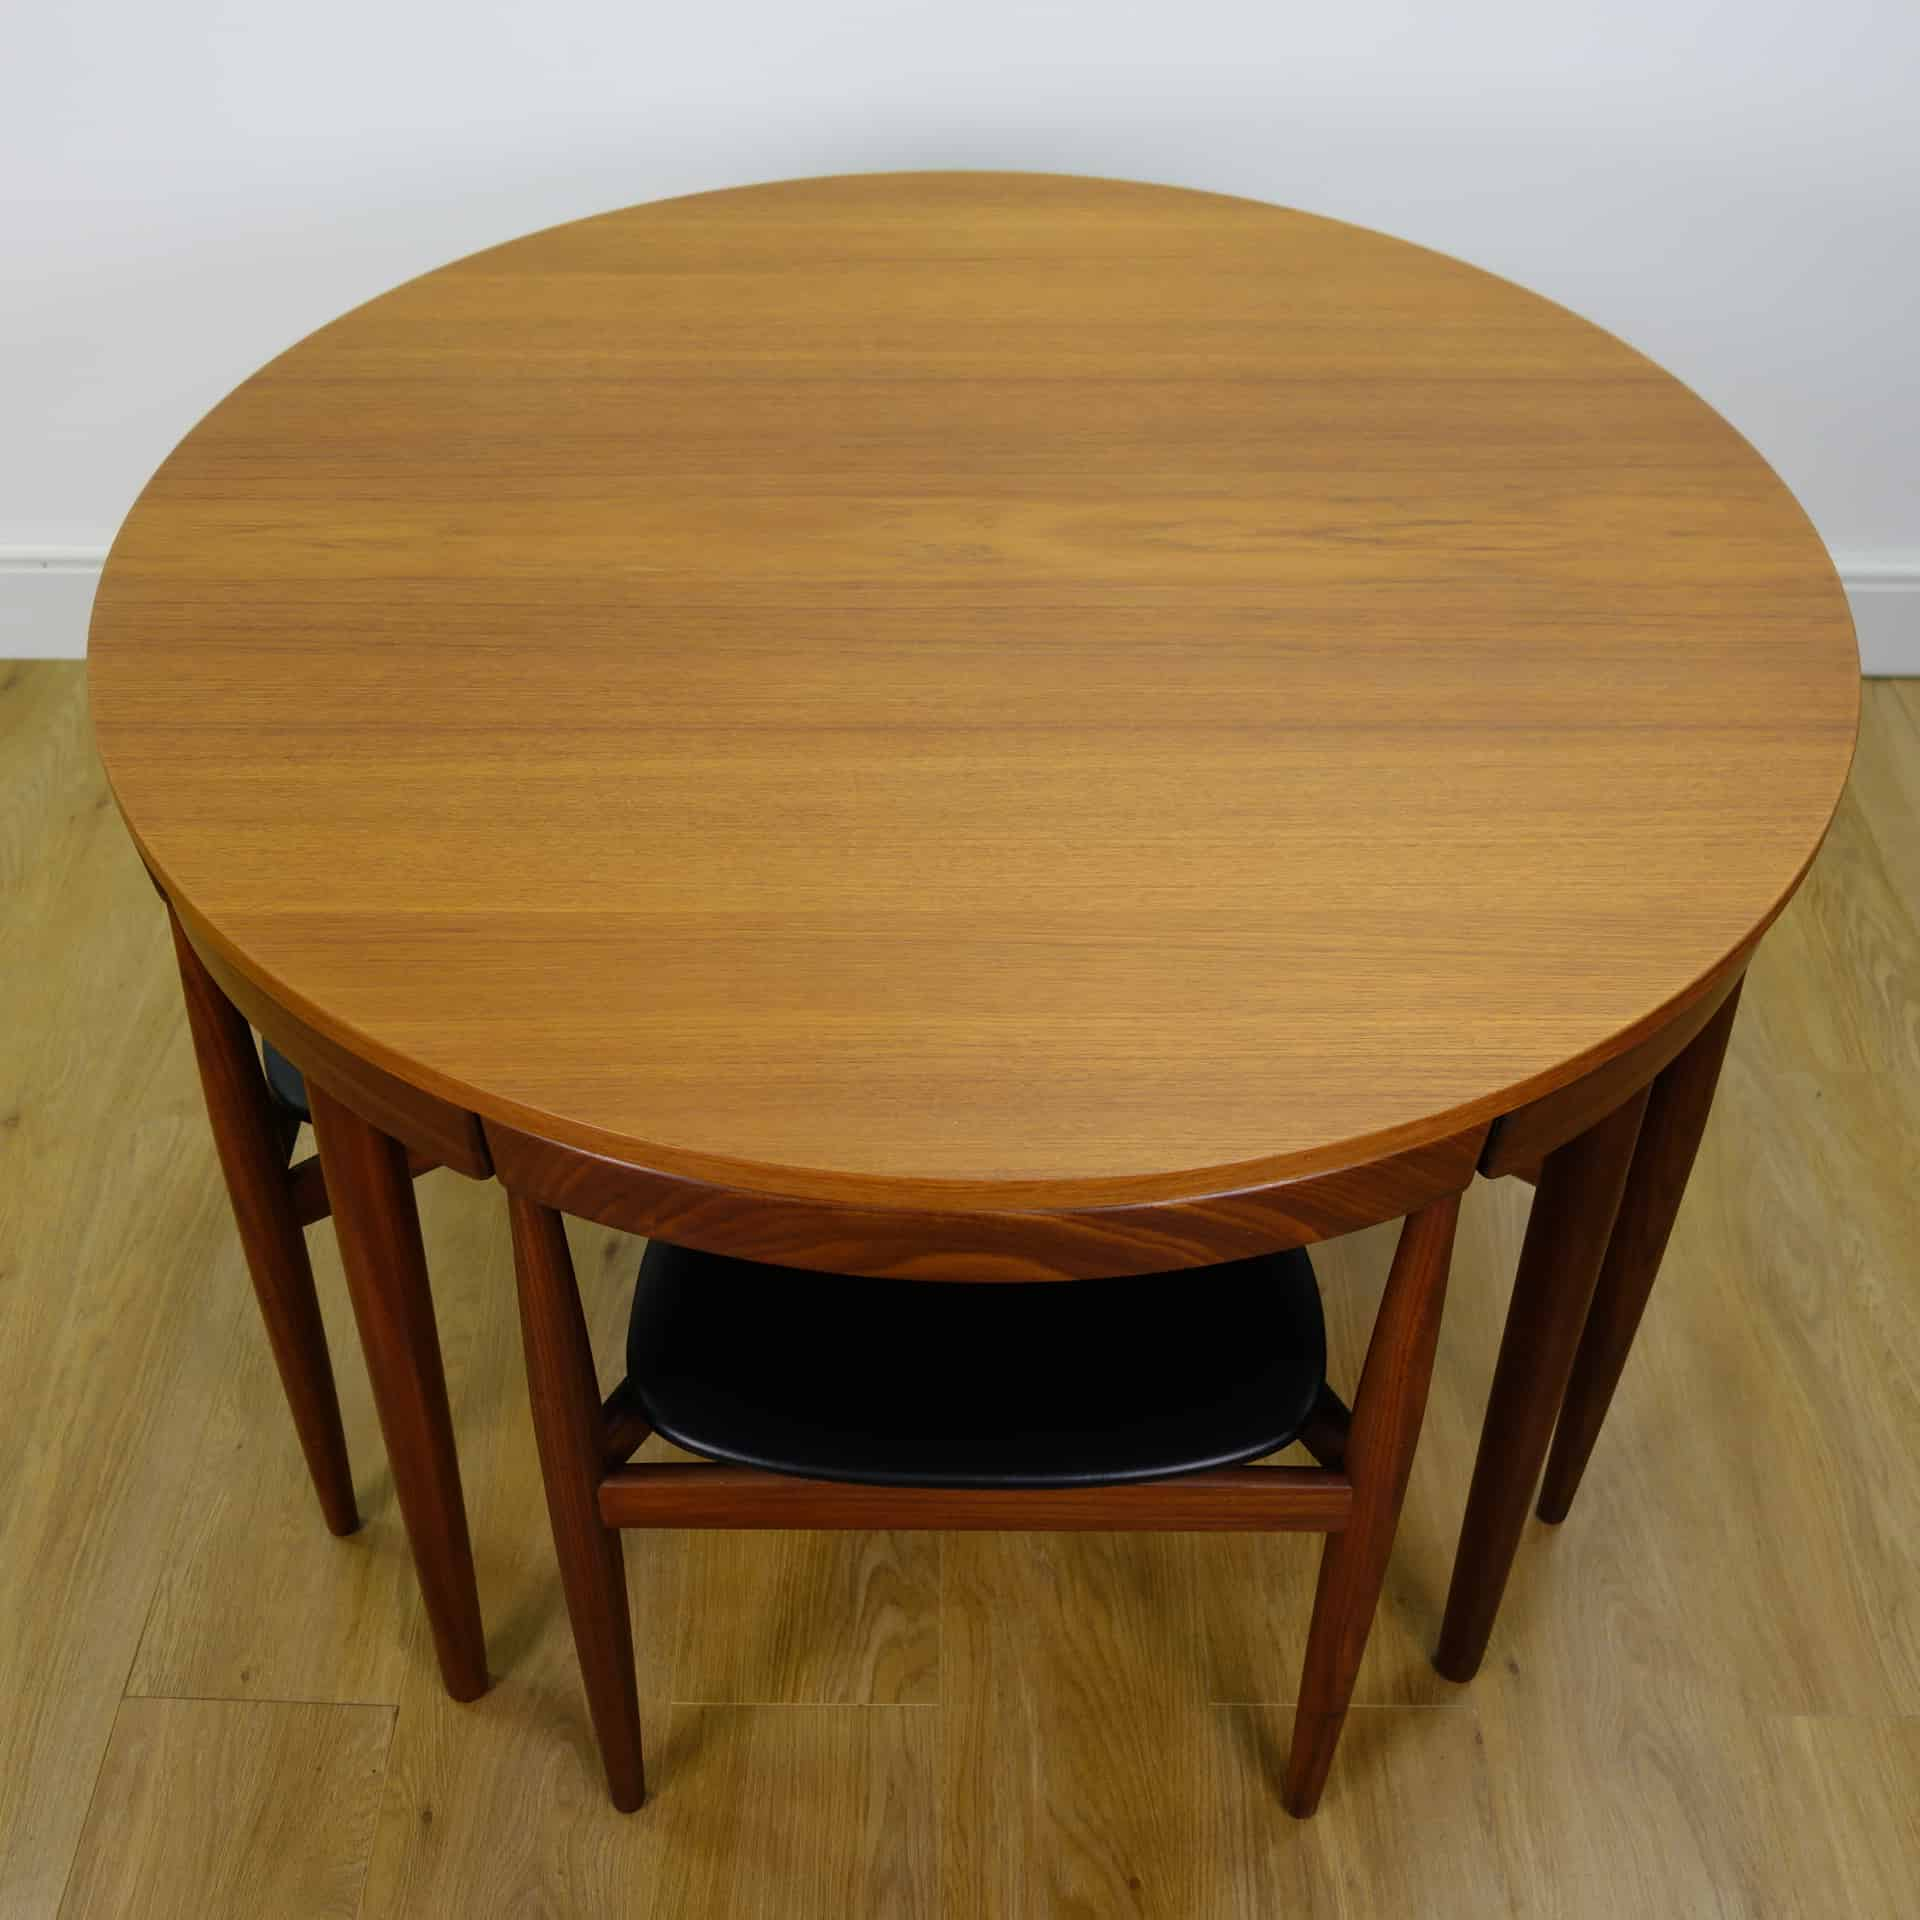 Danish Teak Dining Table And Chairs By Frem Rojle Mark